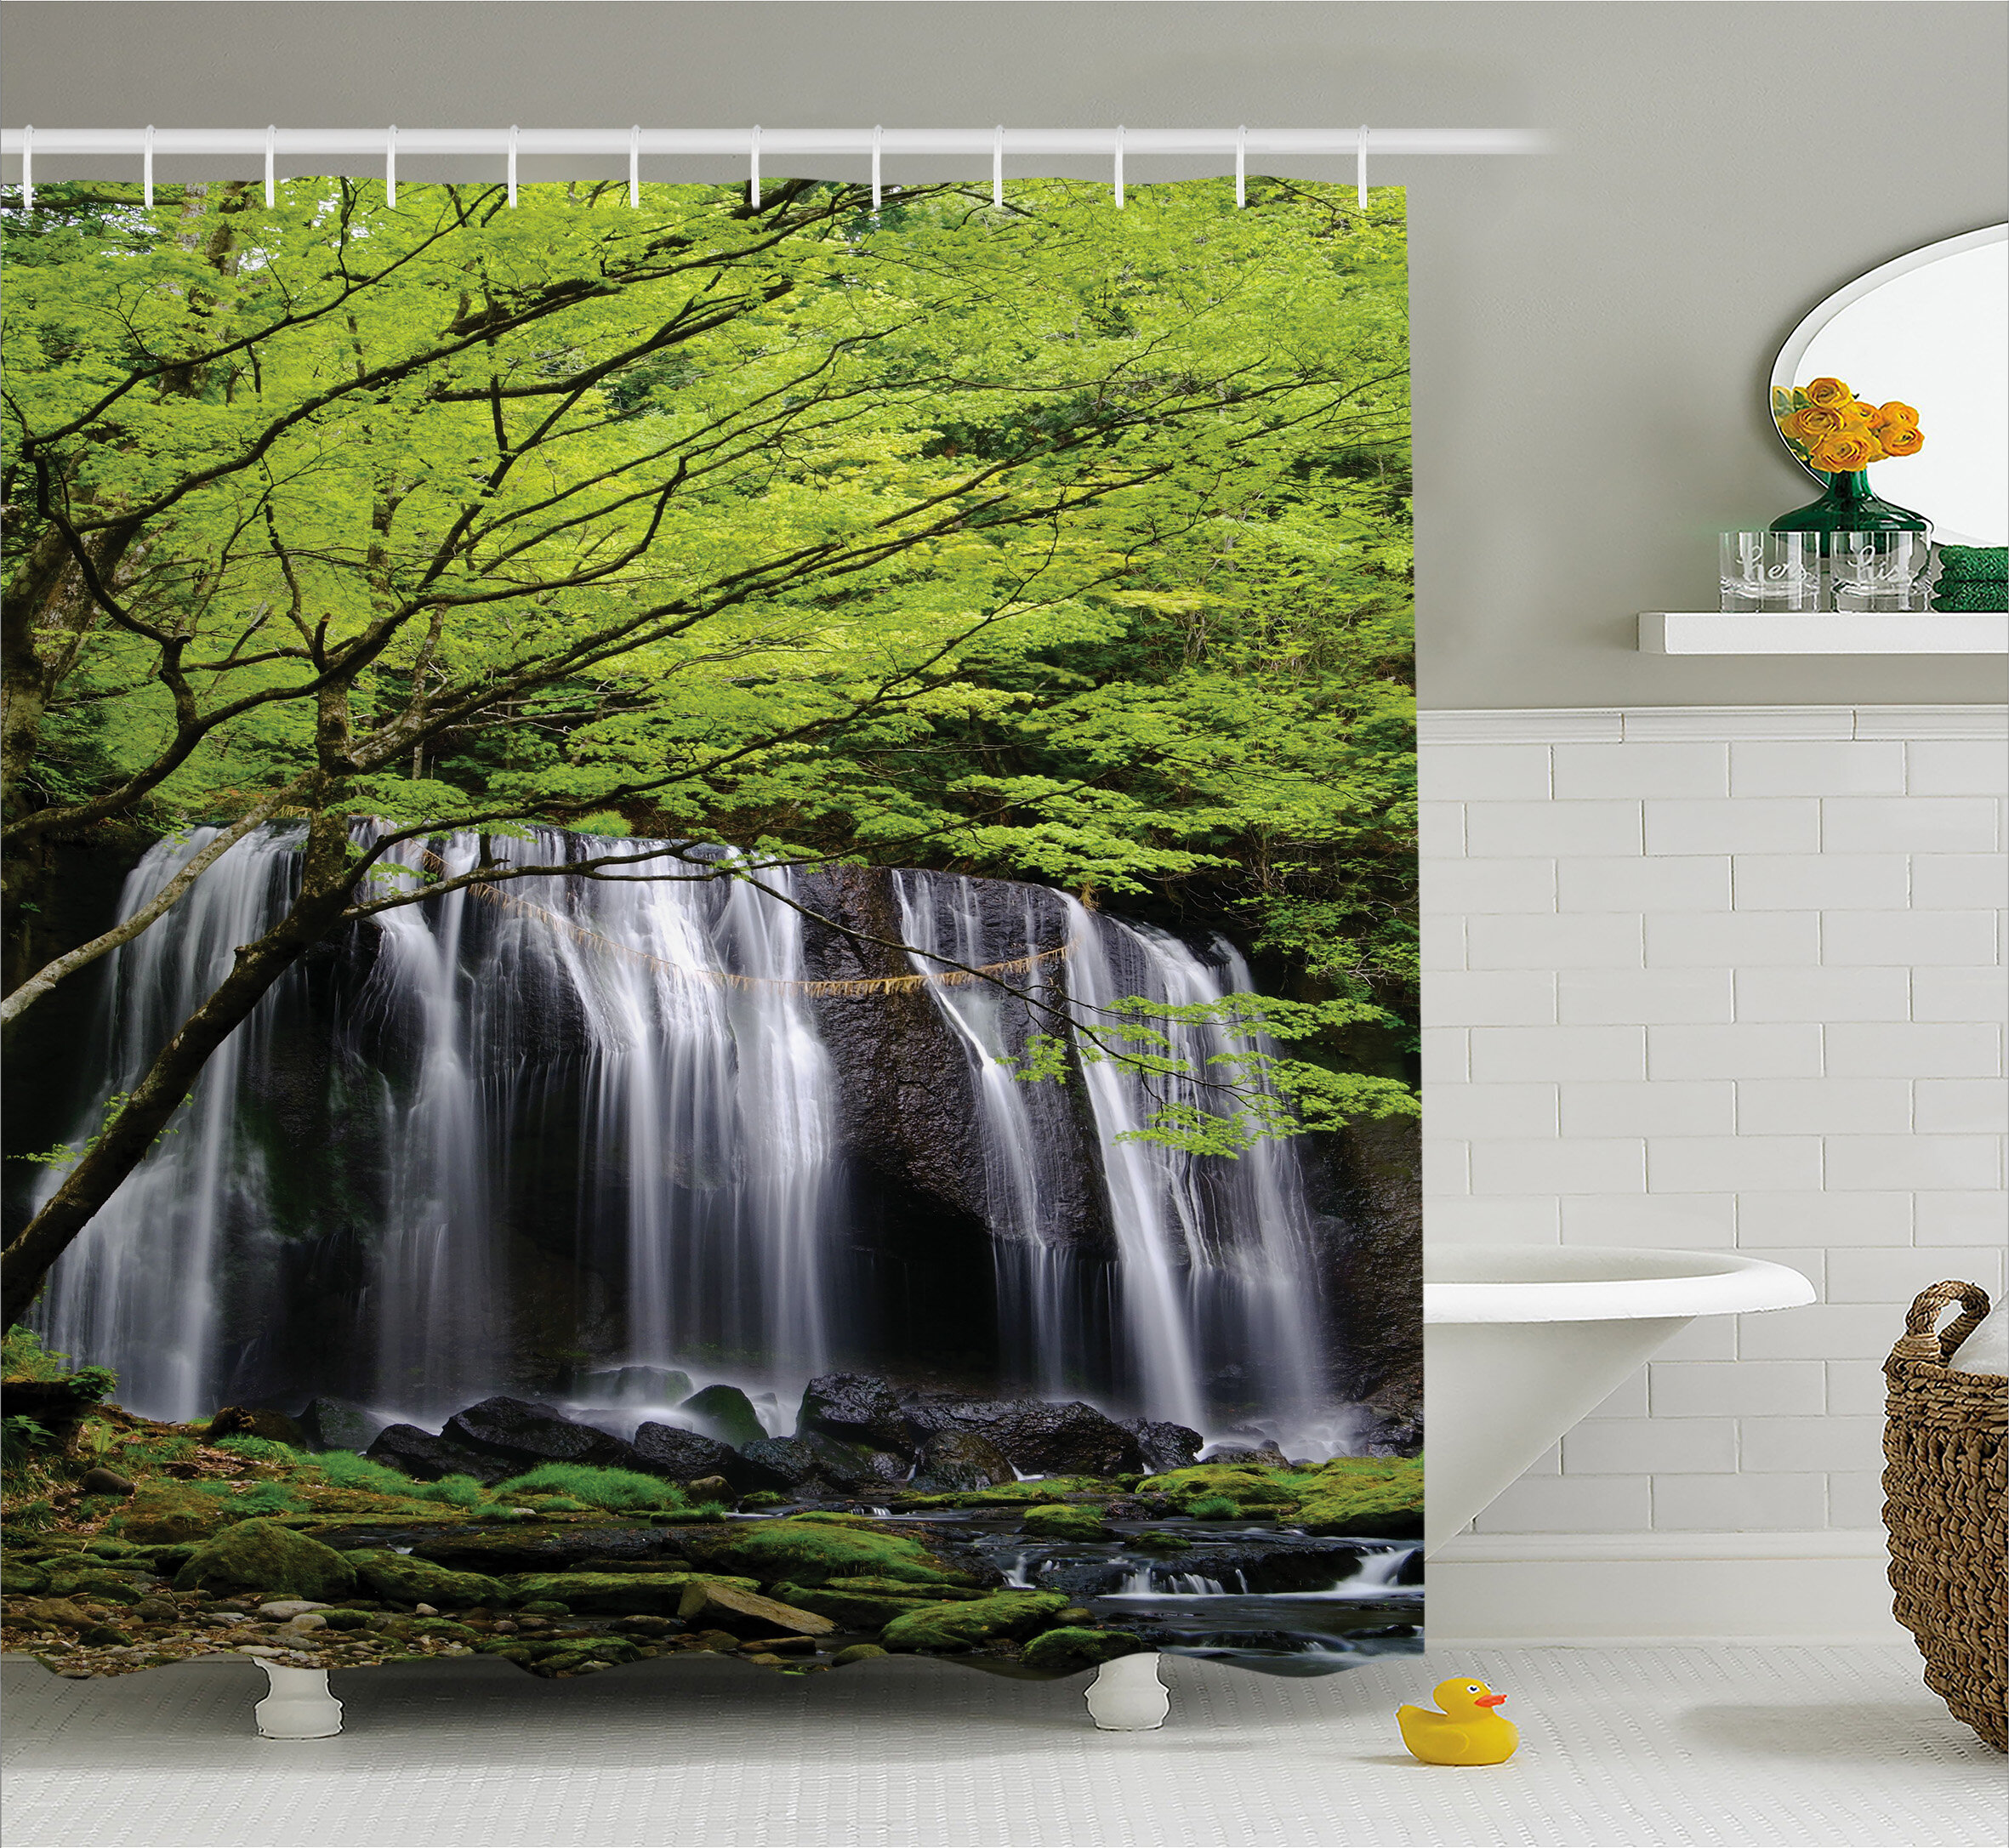 East Urban Home Scenery Rock Tree In Waterfall Shower Curtain